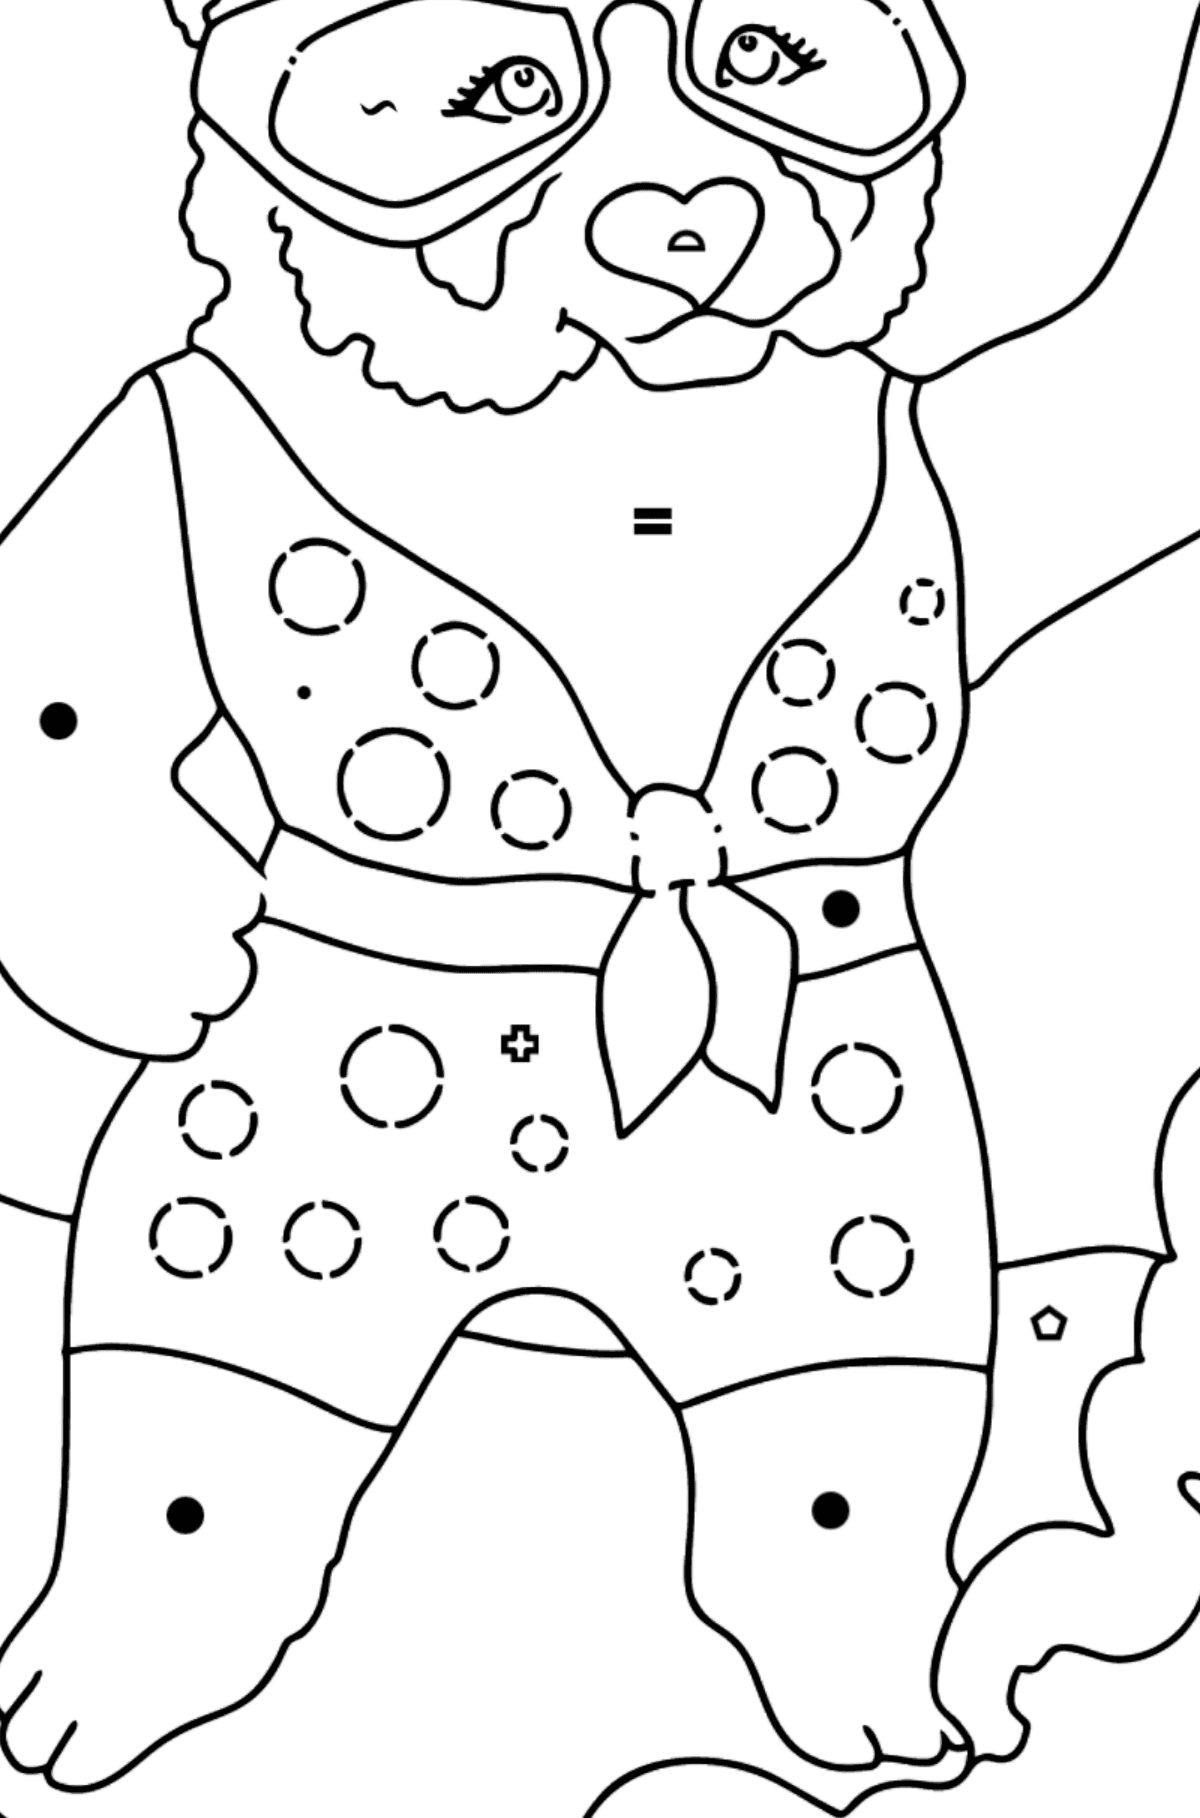 Coloring Page - A Panda with a Surfboard - Coloring by Symbols and Geometric Shapes for Kids